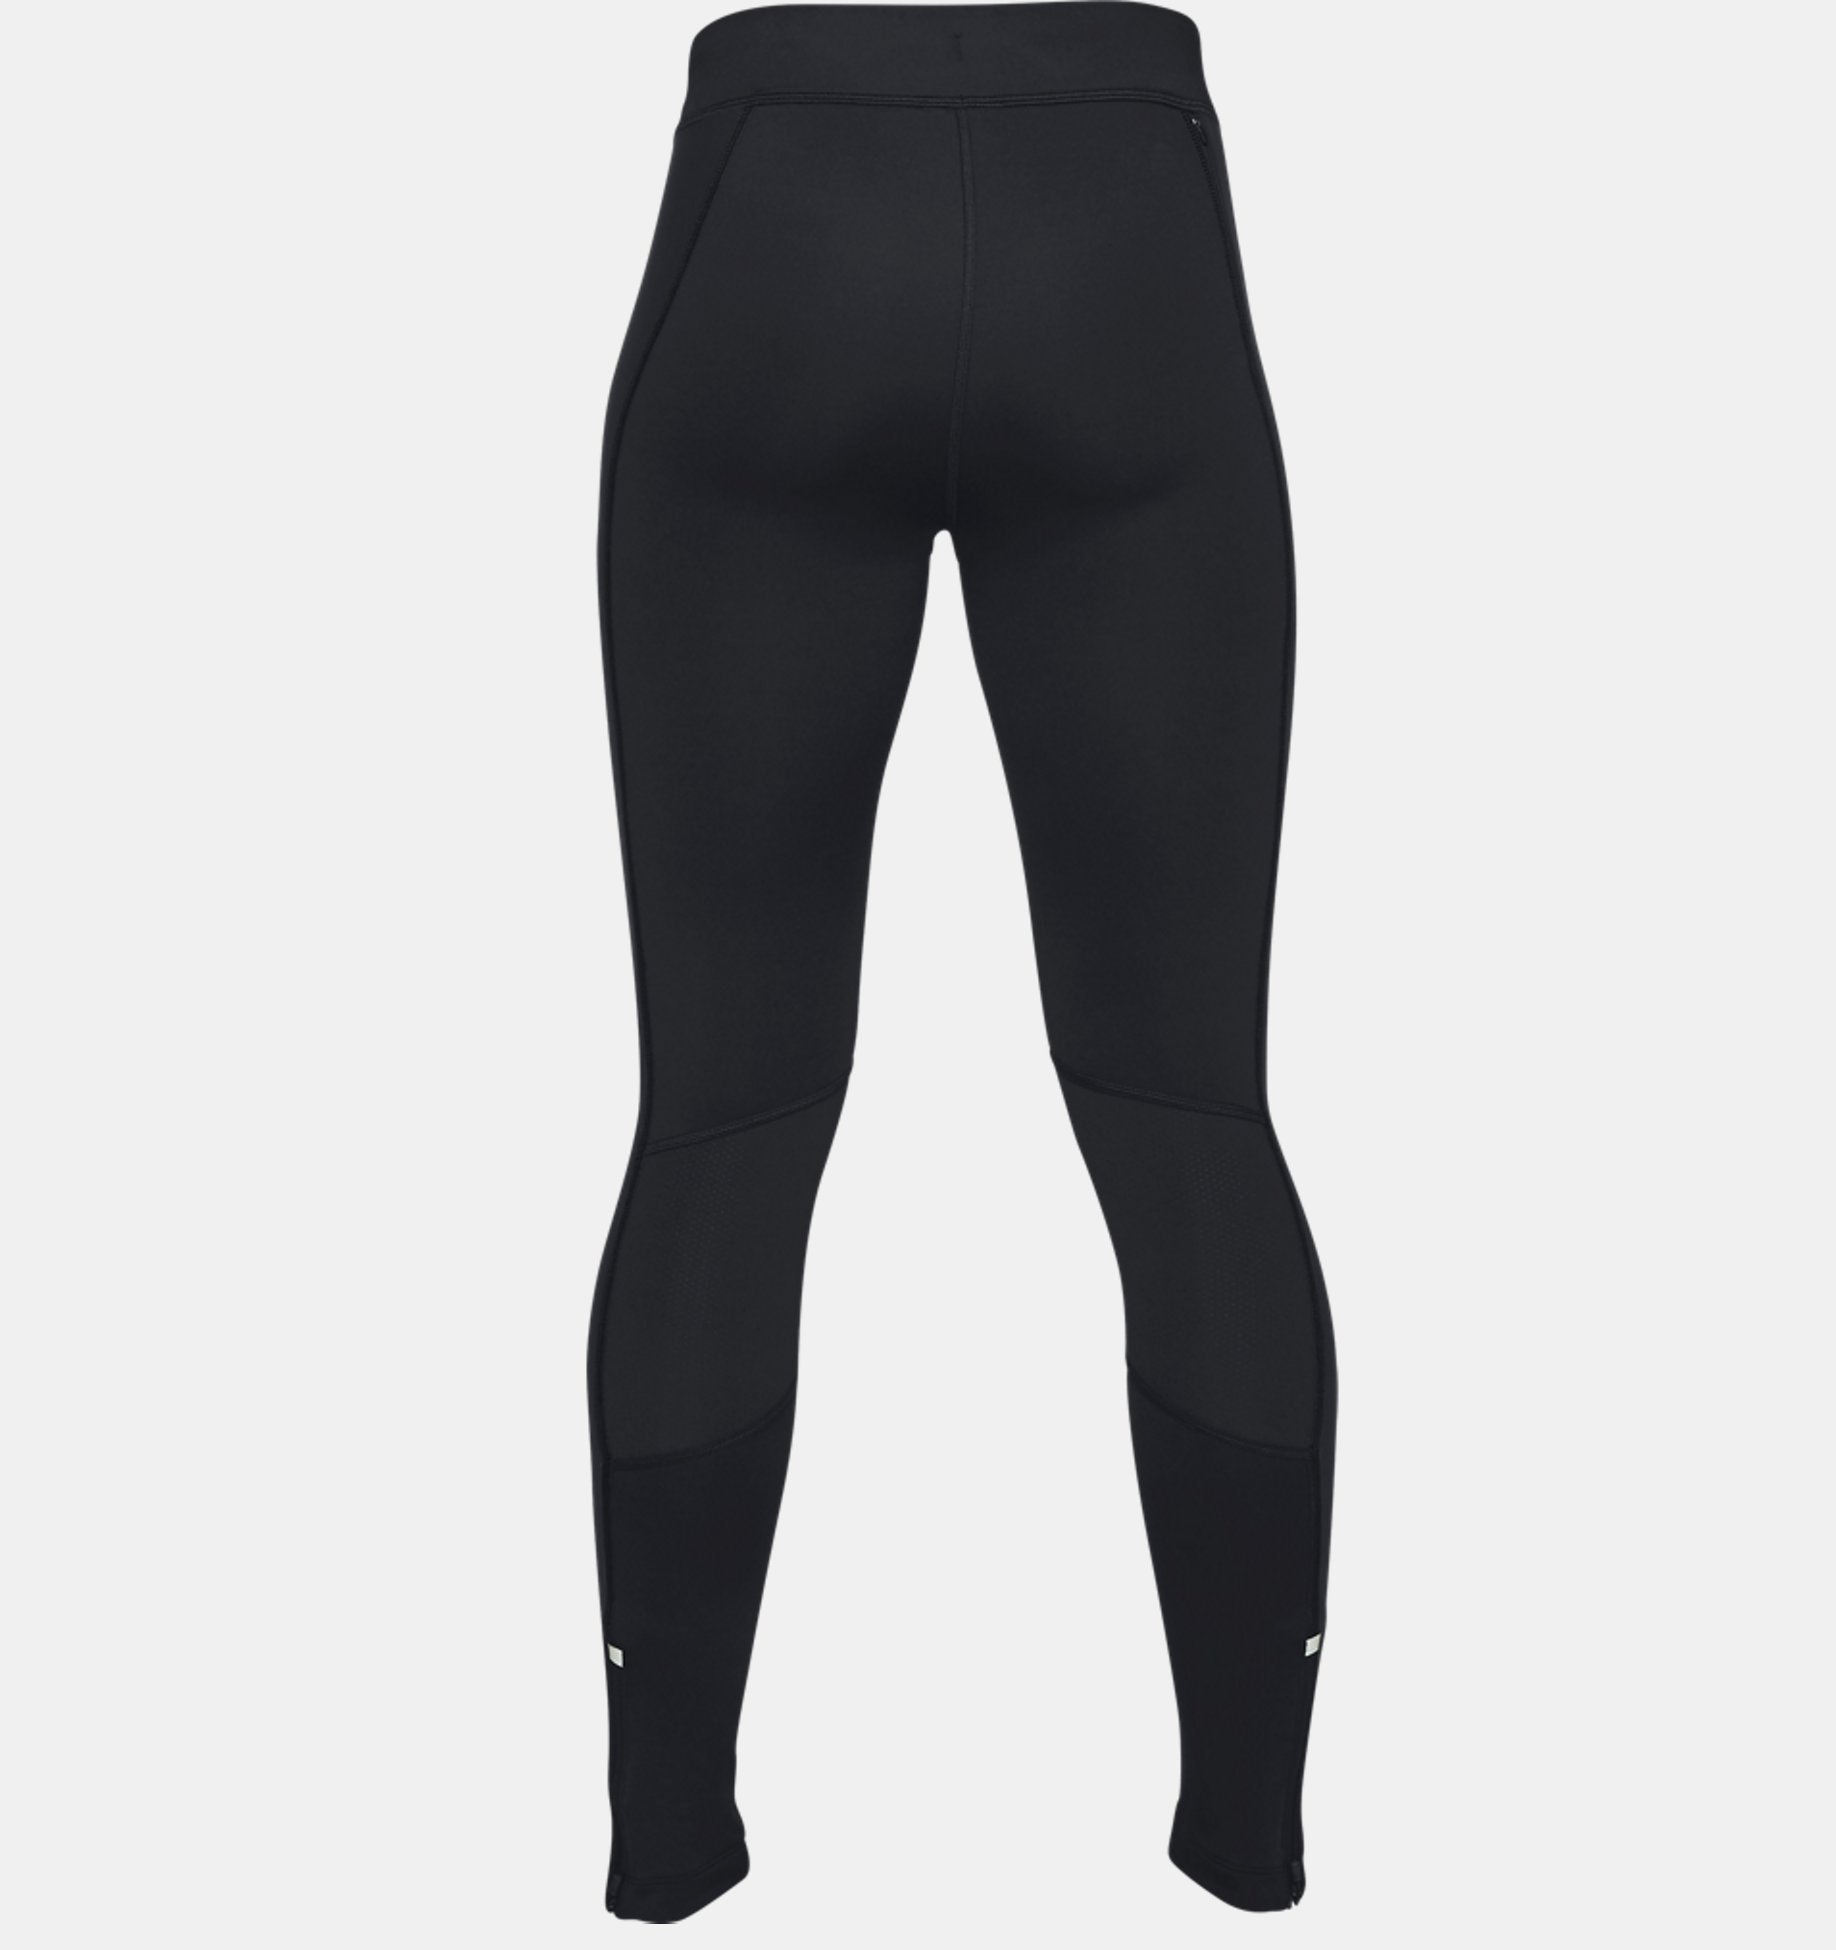 4db81d9ca38b4 Women's ColdGear® Run Storm Tights | Under Armour AT